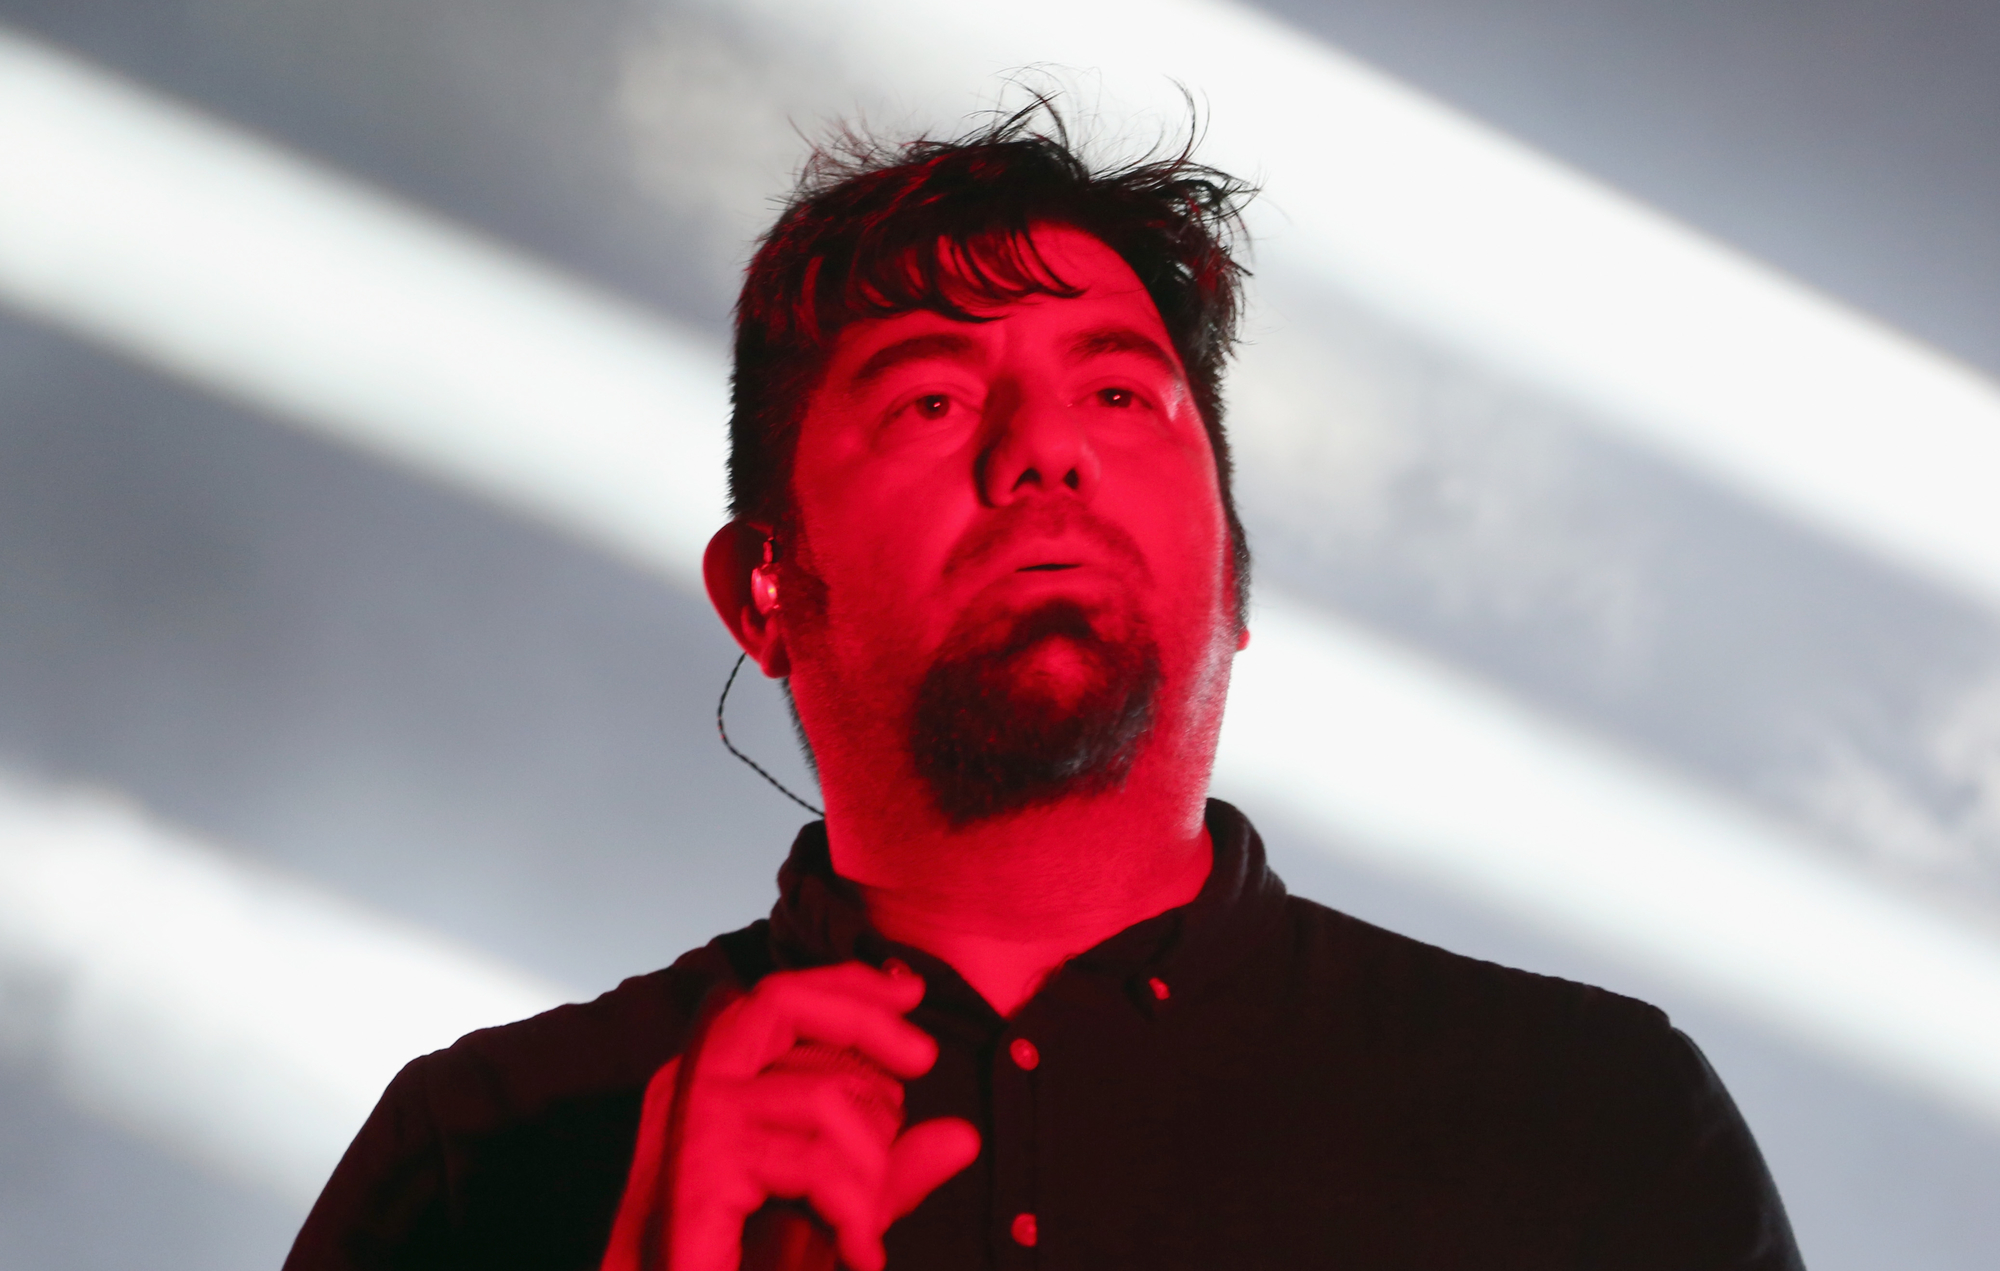 Watch Deftones perform rare 'Eros' track 'Smile' live for the first time